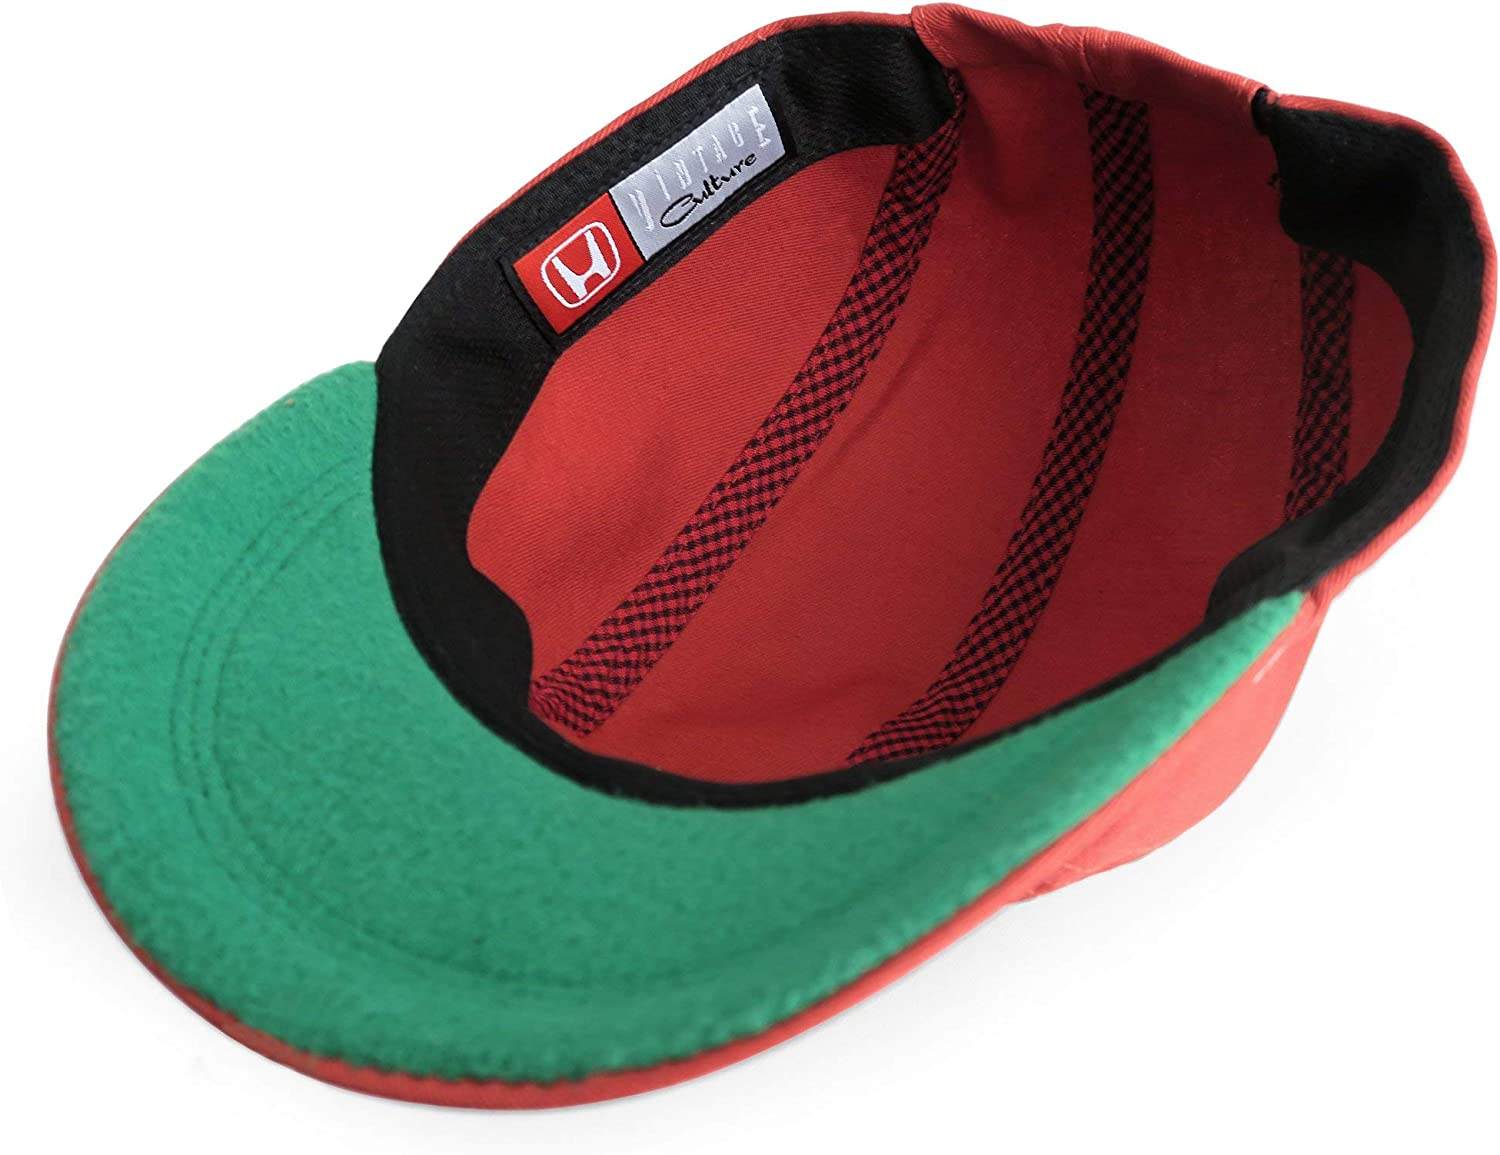 Vintage Culture Officially Licensed Honda Racing Replica 1964 Mechanics Hat OSFA Red Limited